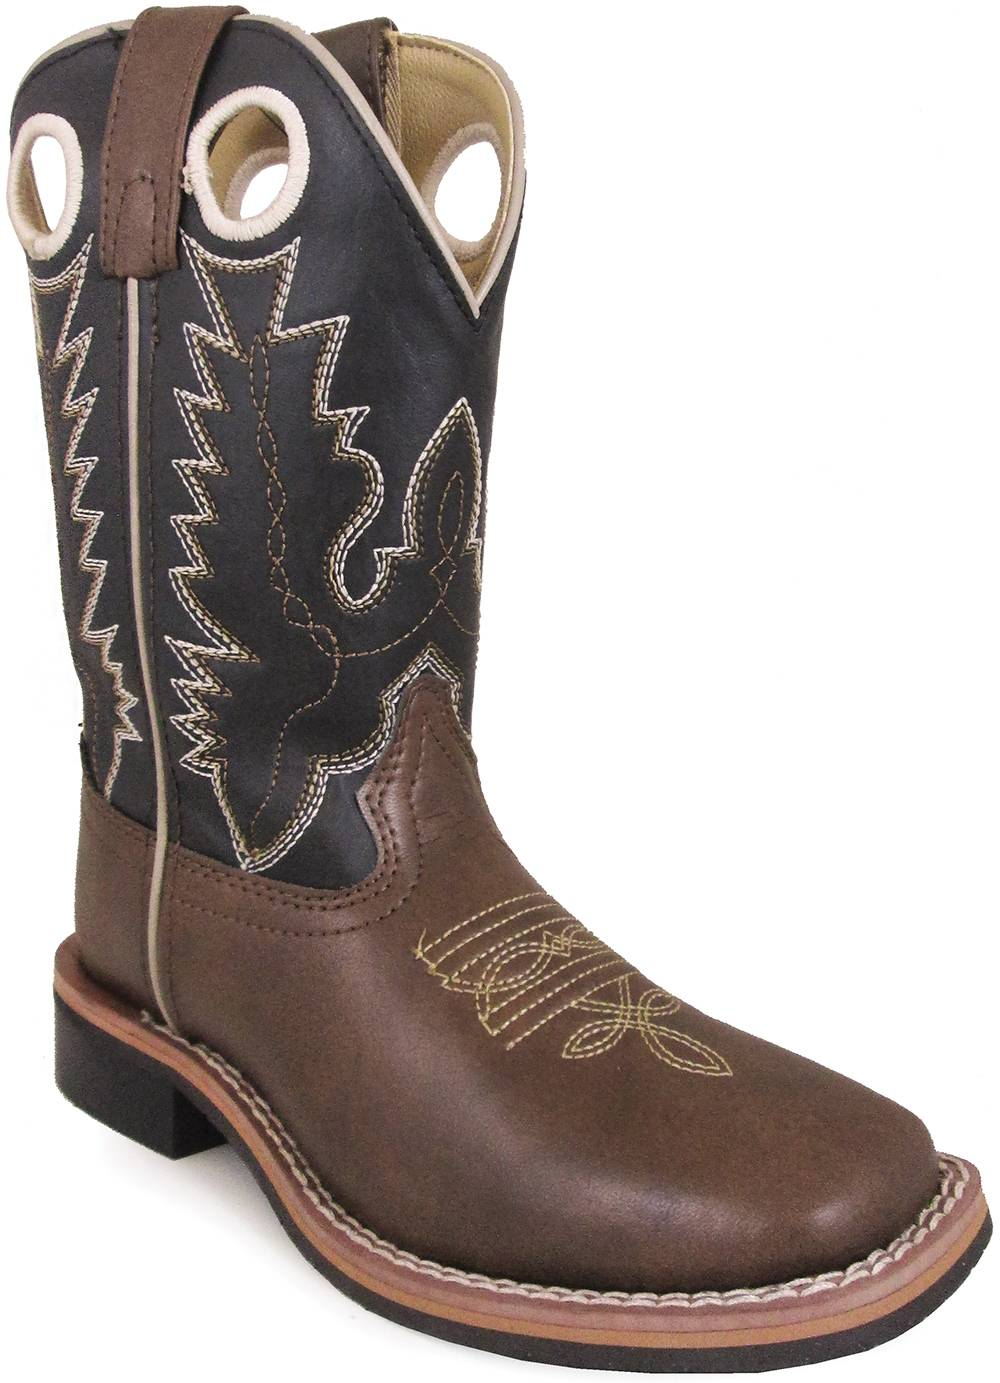 Smoky Mountain Blaze Square Toe Boots - Childrens - Brown/Black